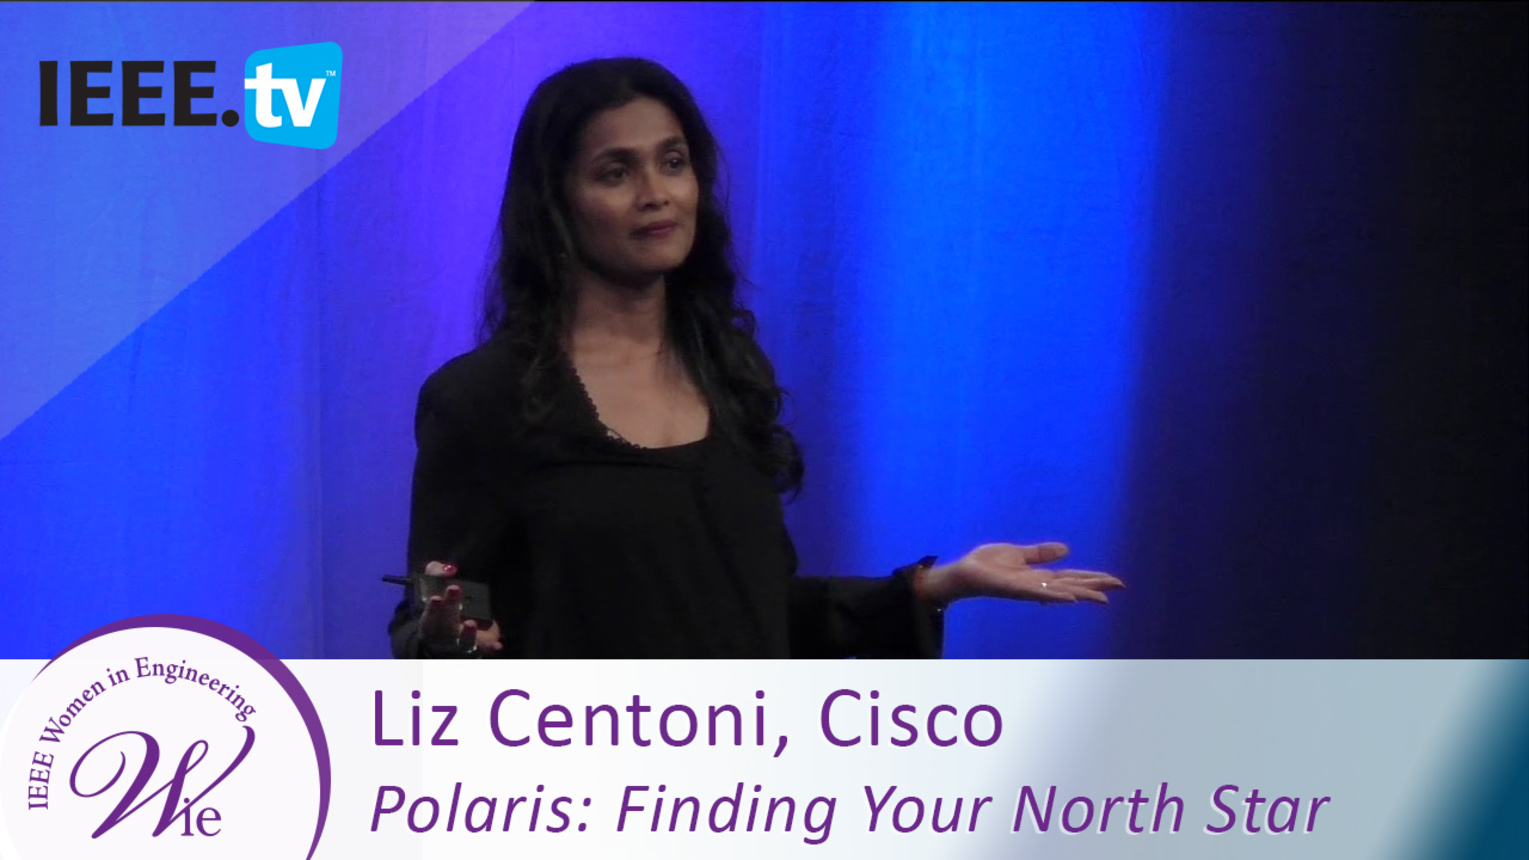 Liz Centoni from Cisco on Polaris: Finding Your North Star - 2016 Women in Engineering Conference